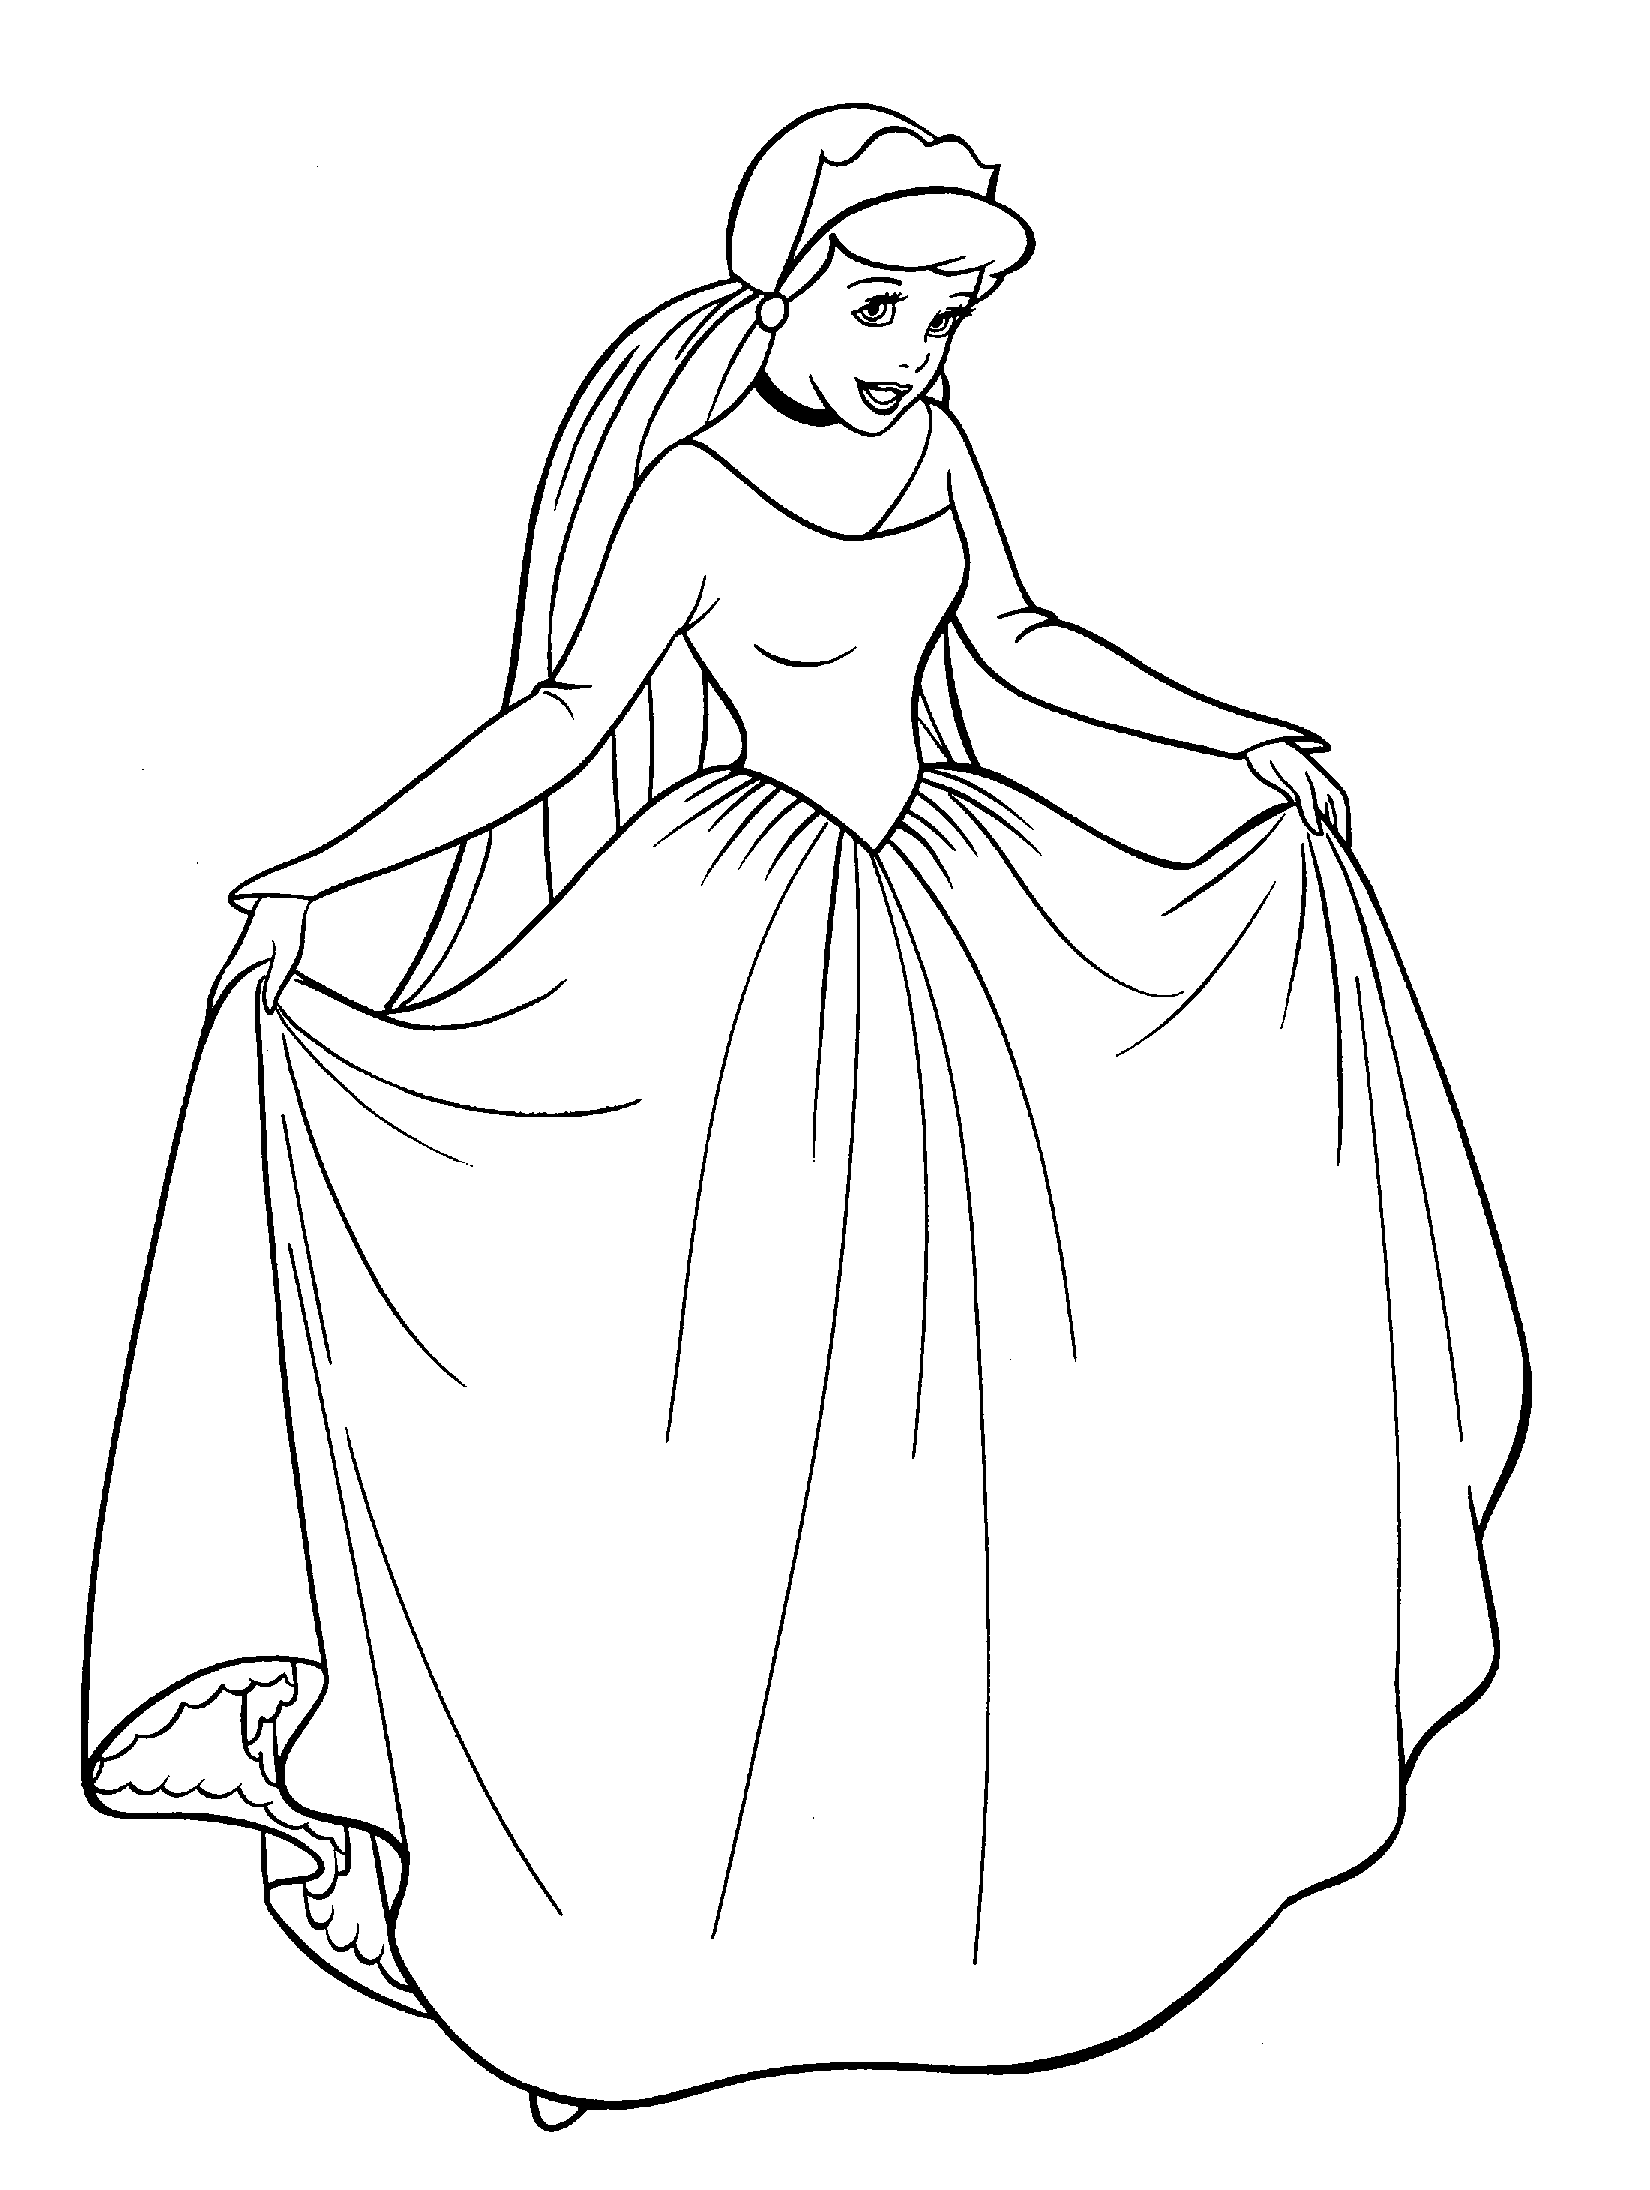 cinderfella coloring pages - photo#10